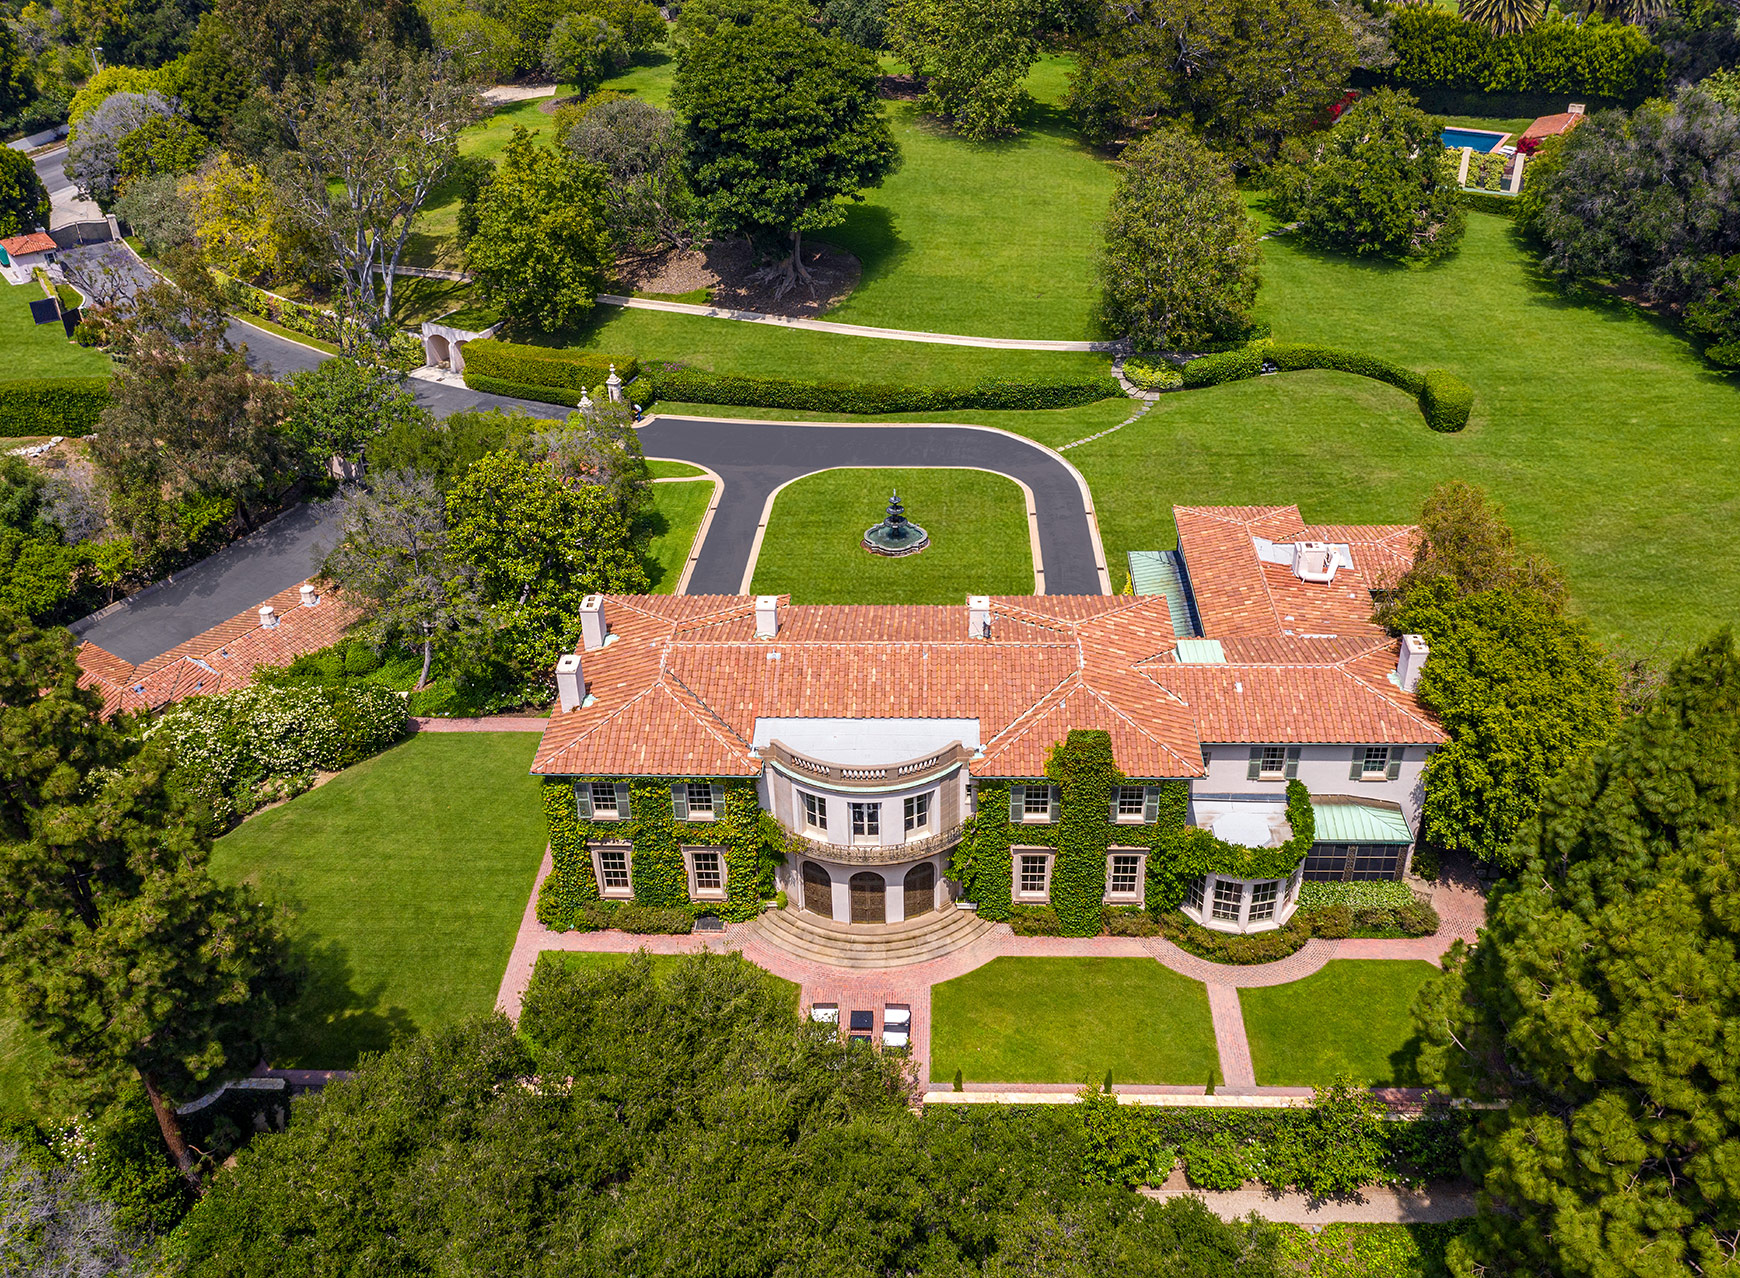 With Ties to Marilyn Monroe and Cher, a Legendary Hollywood Home Is For Sale For $115 Million